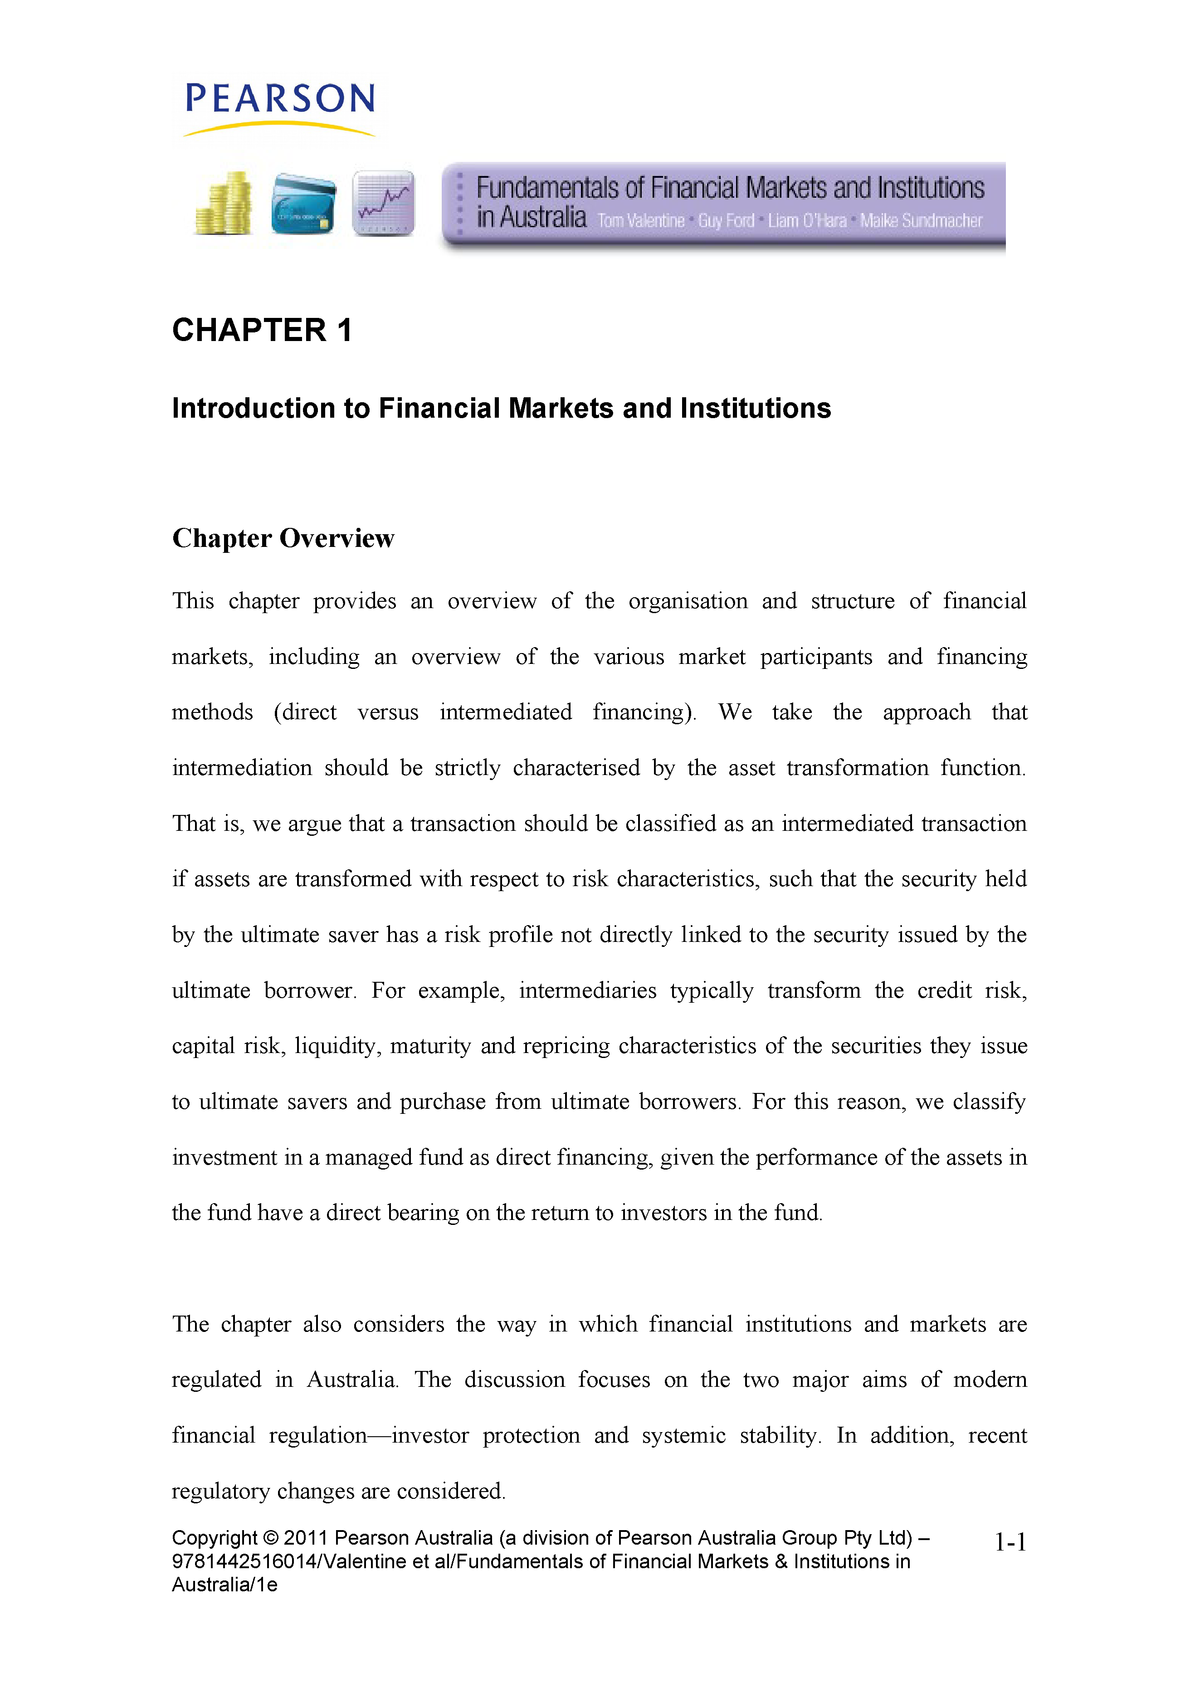 Tutorial work - chapter 1 - Introduction to Financial